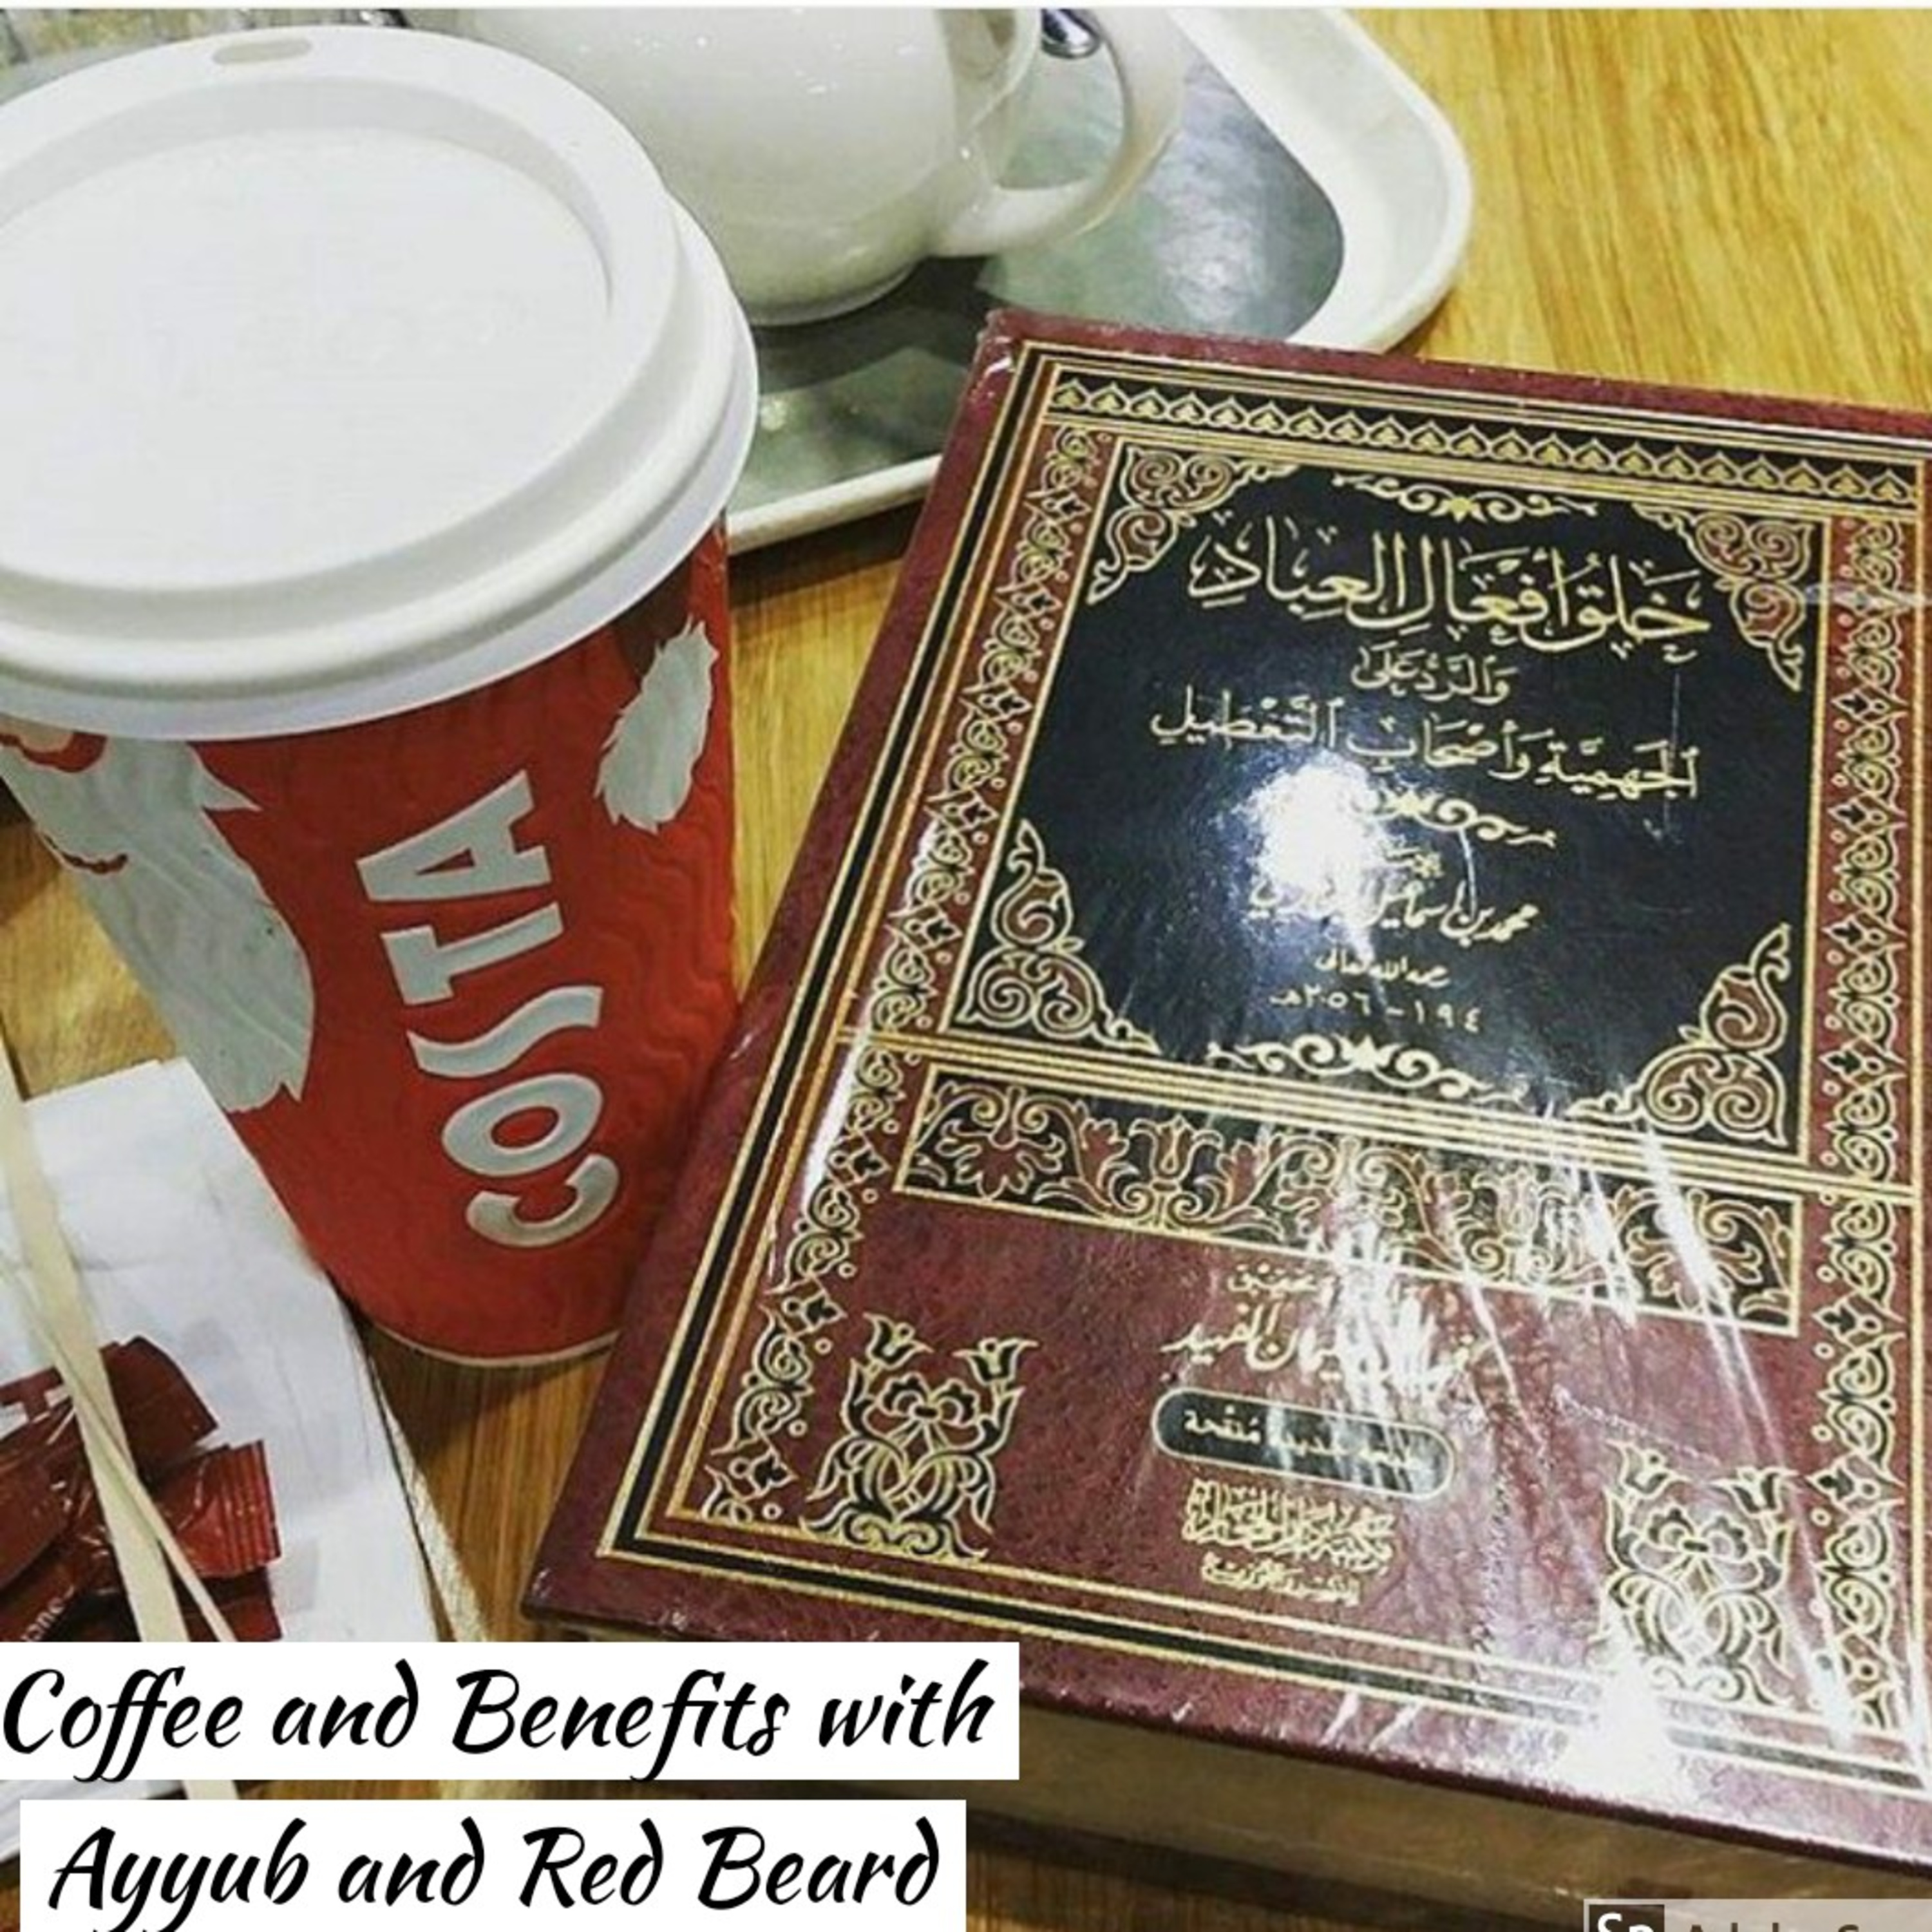 Coffee and Benefits with Ayyub and Red Beard